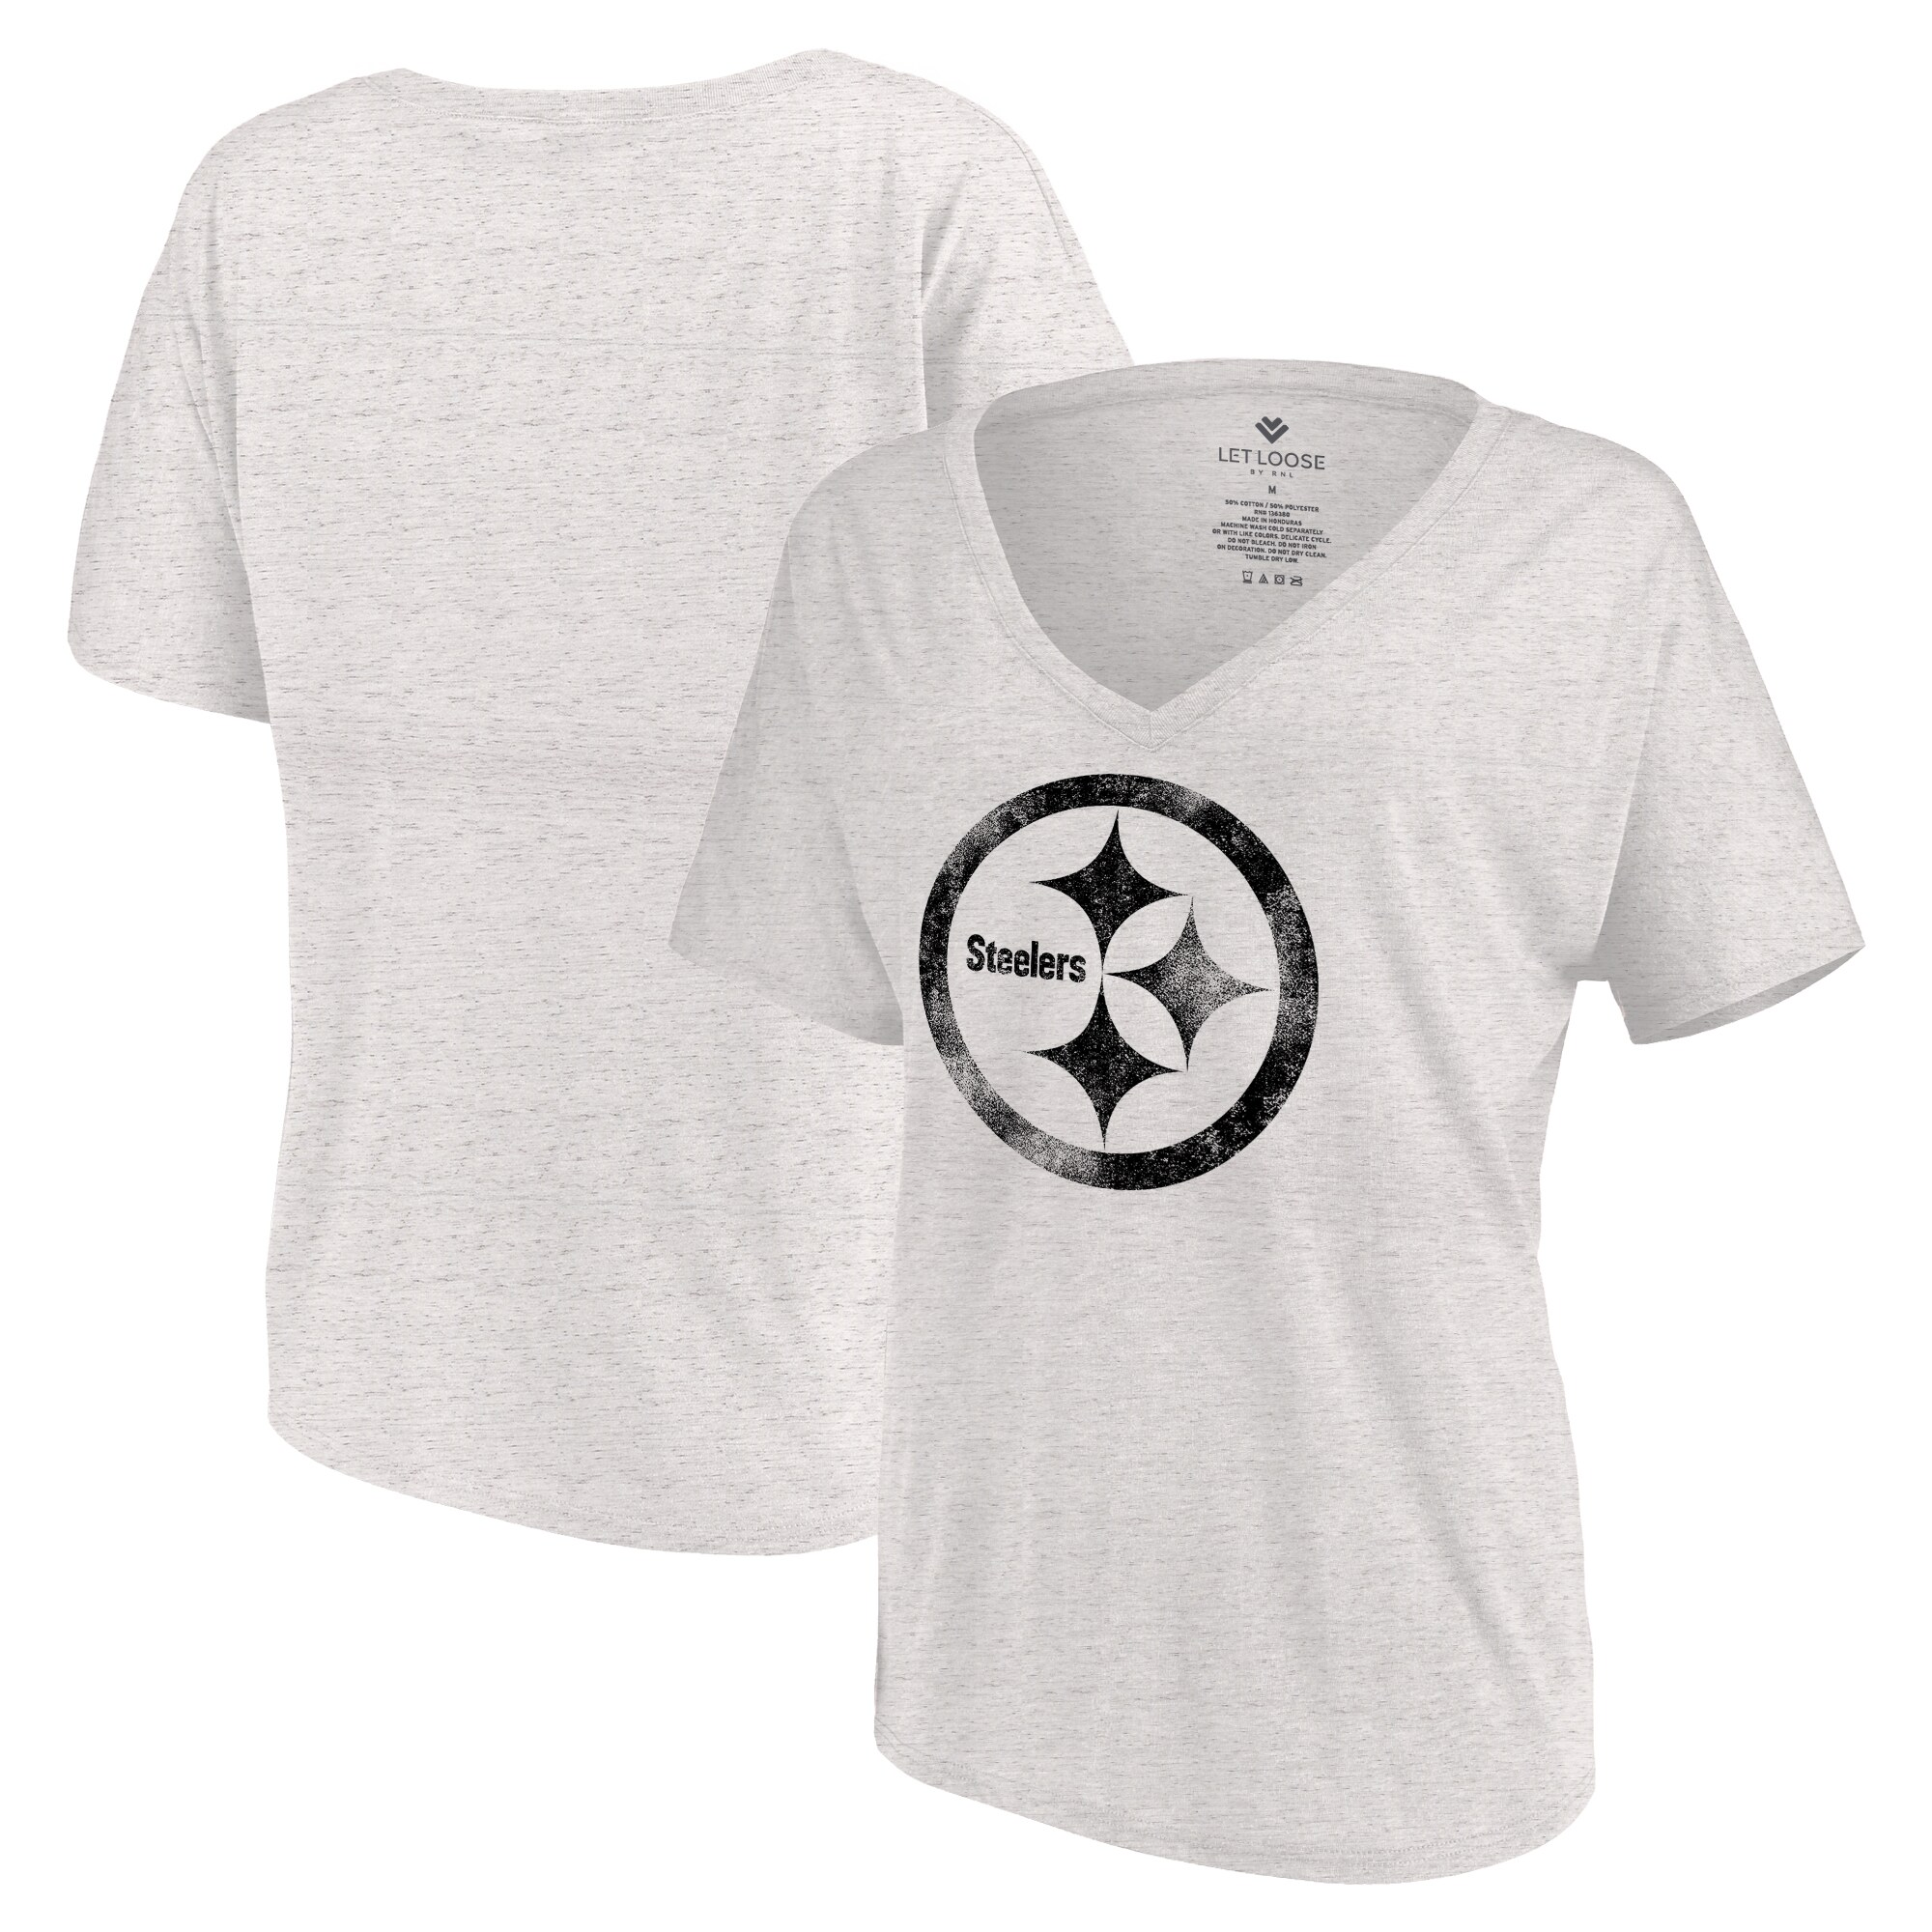 Pittsburgh Steelers Let Loose by RNL Women's Distressed Primary V-Neck T-Shirt - White